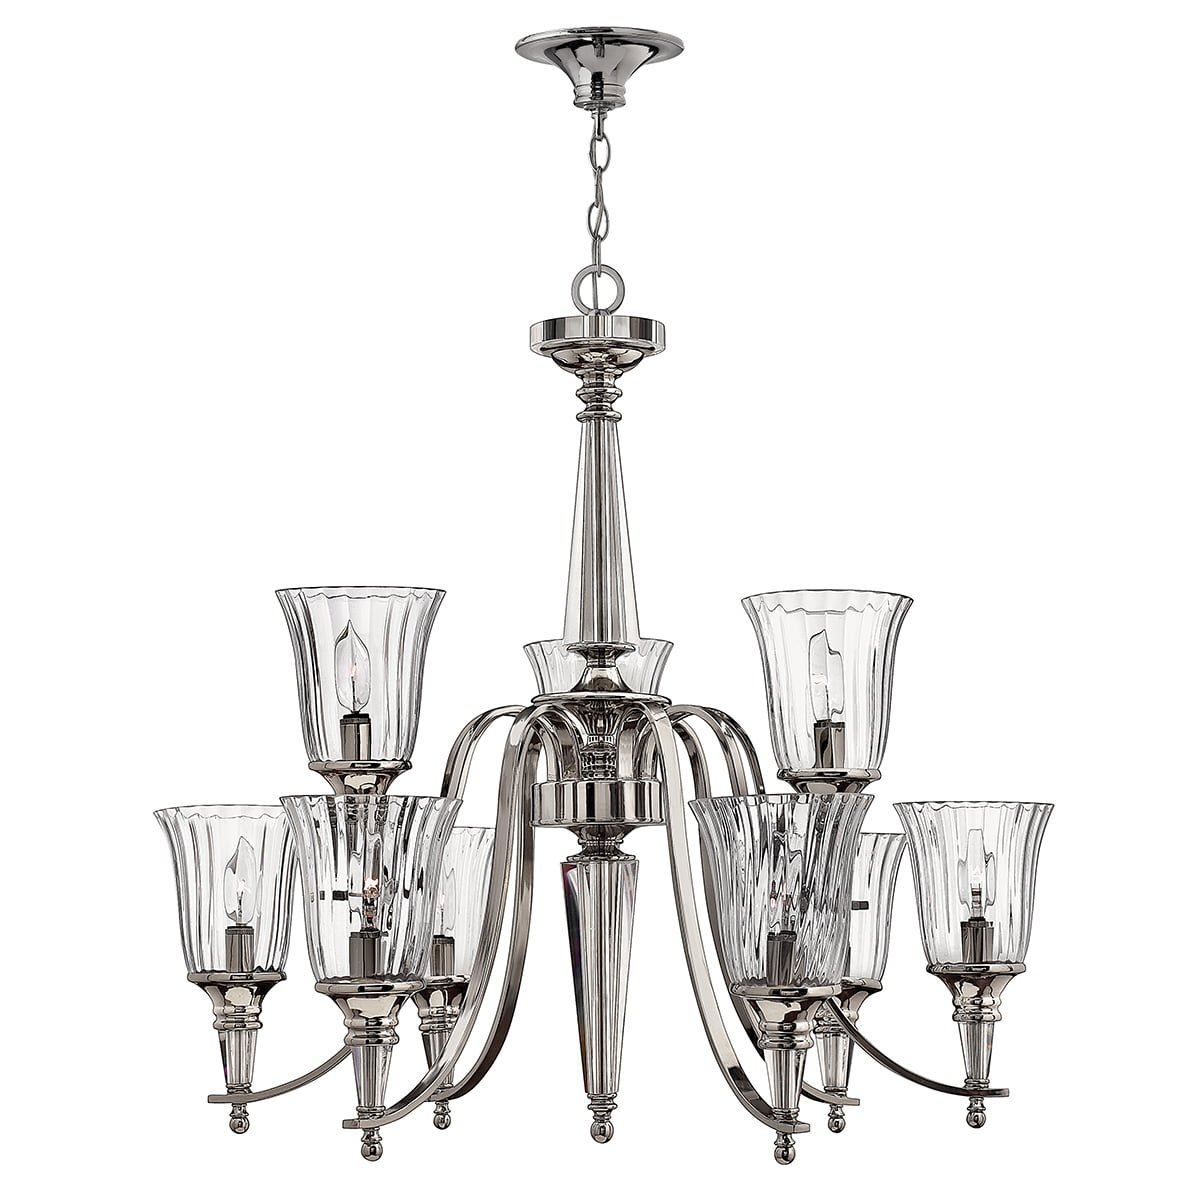 Elstead HK-CHANDON9 Chandon  9 Light Chandelier in Polished Sterling Metal Finish